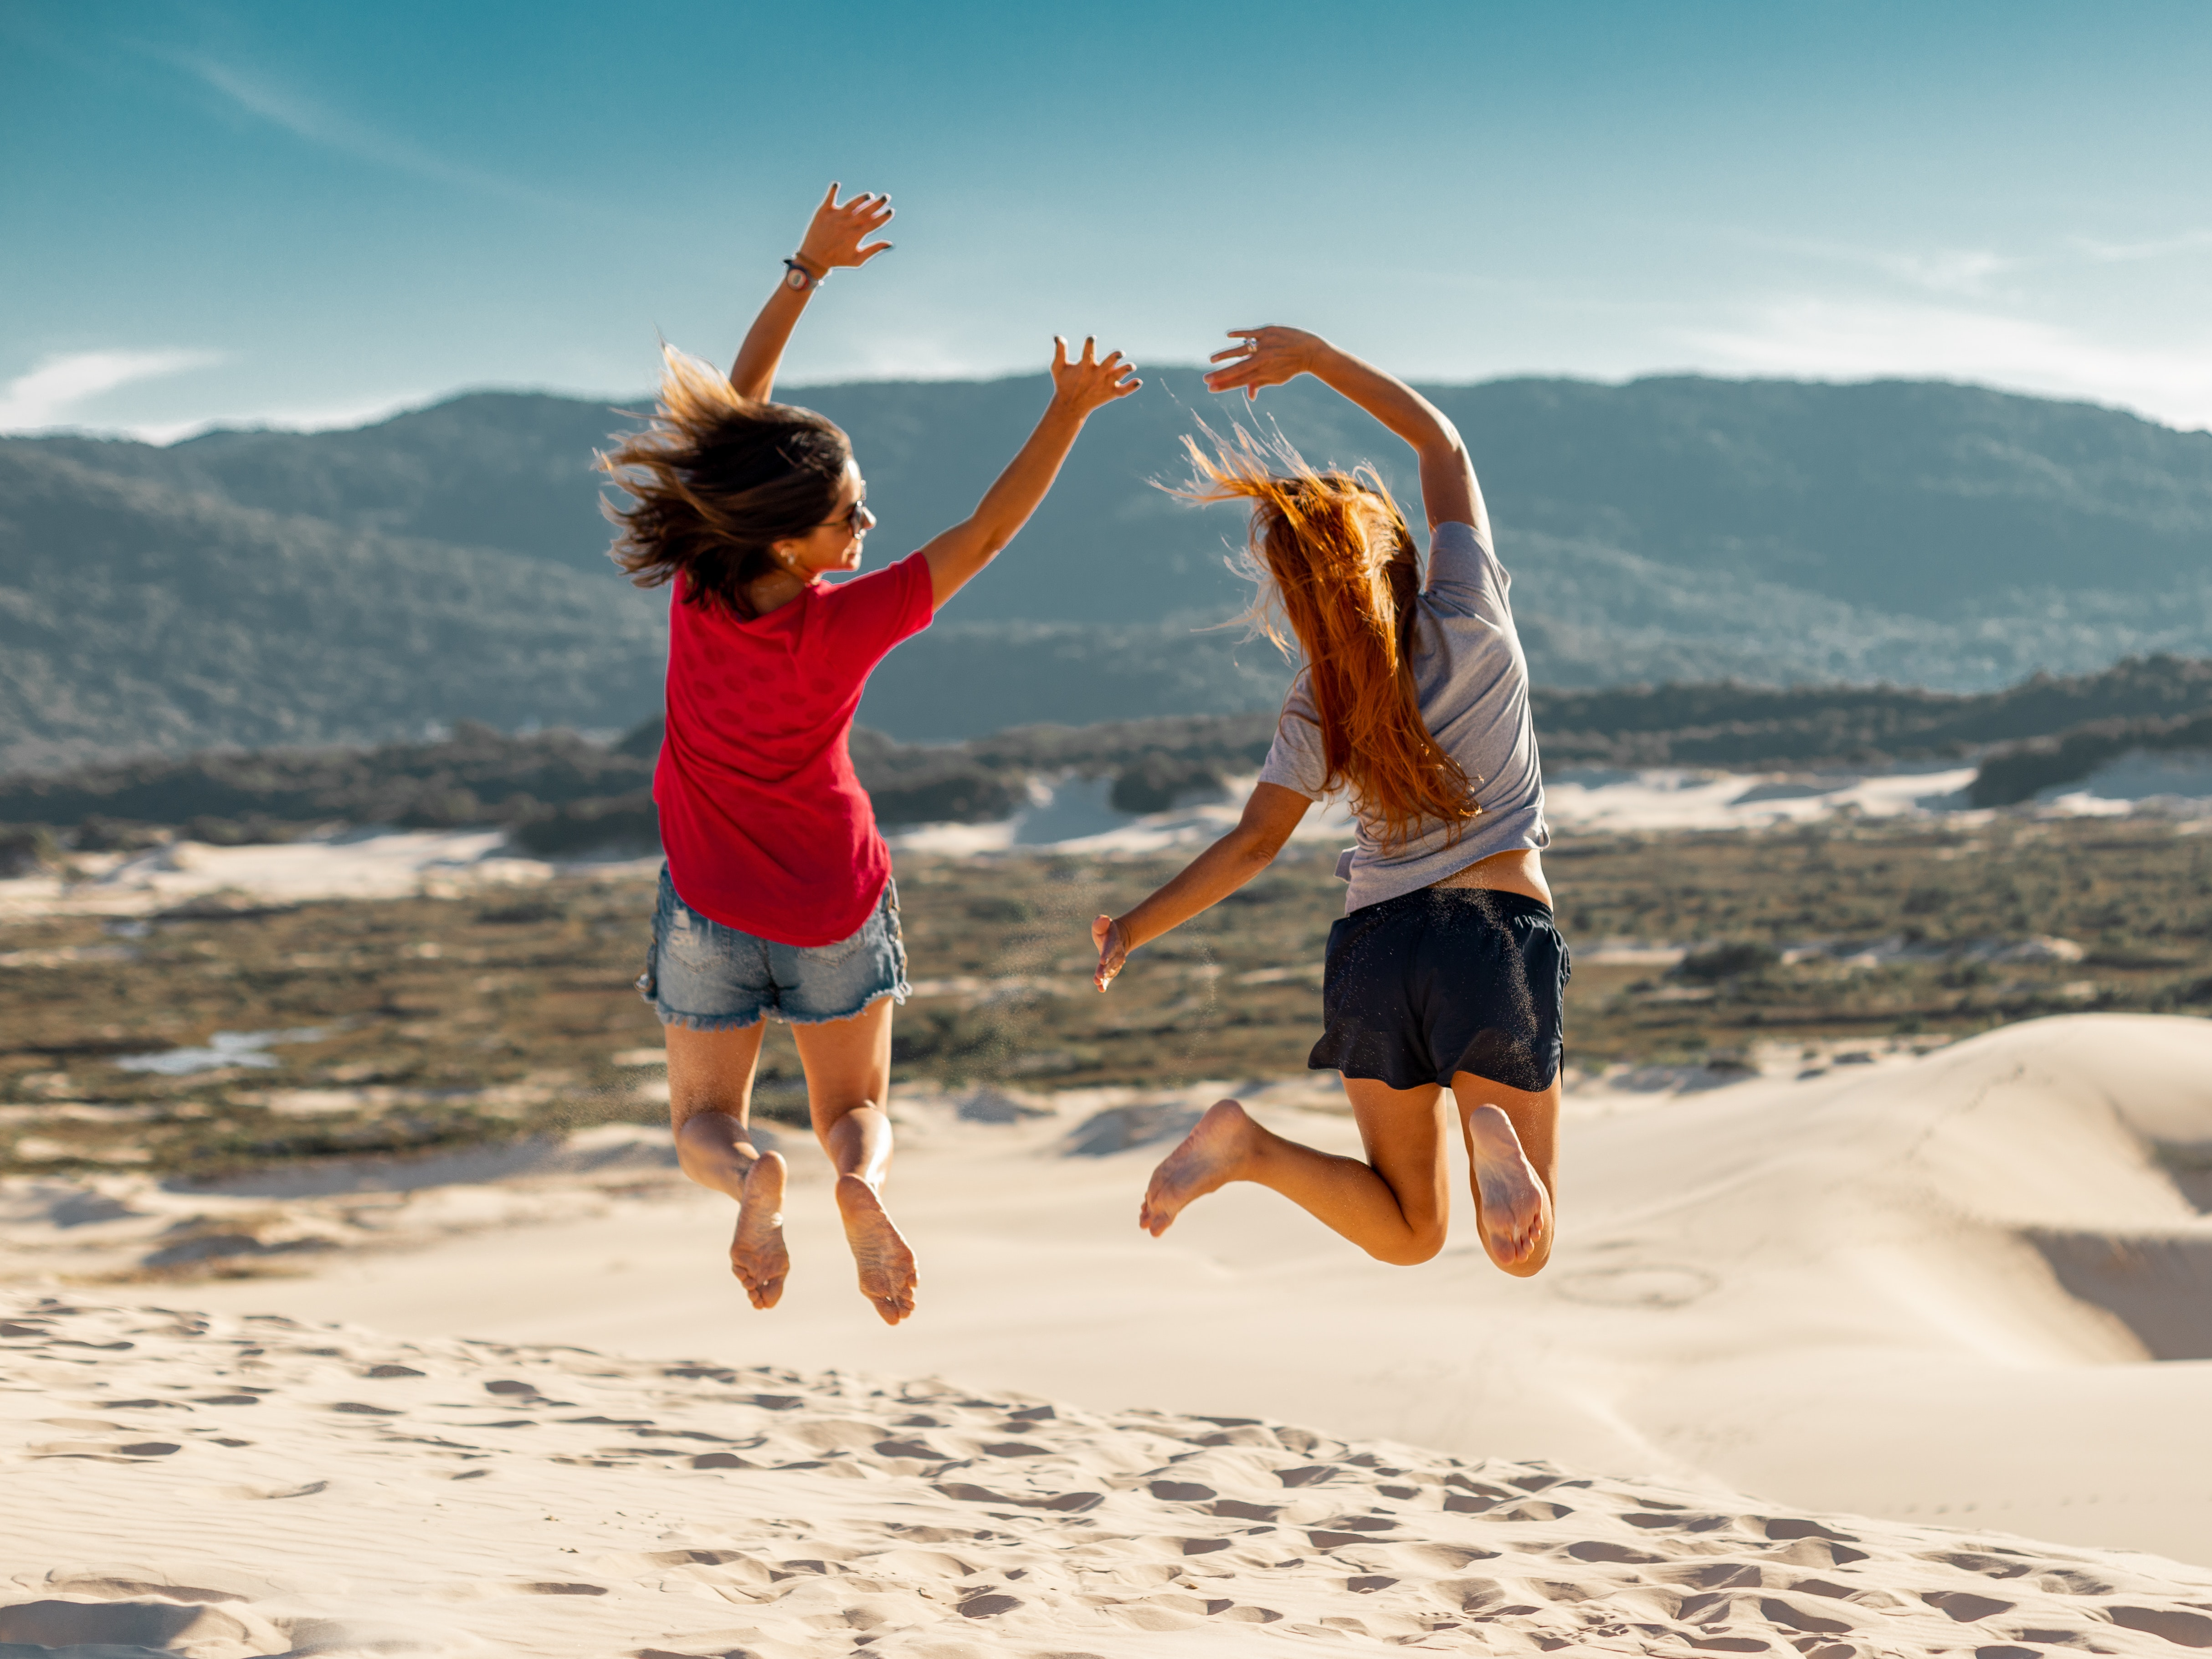 jump-shot-photography-of-two-women-2597365